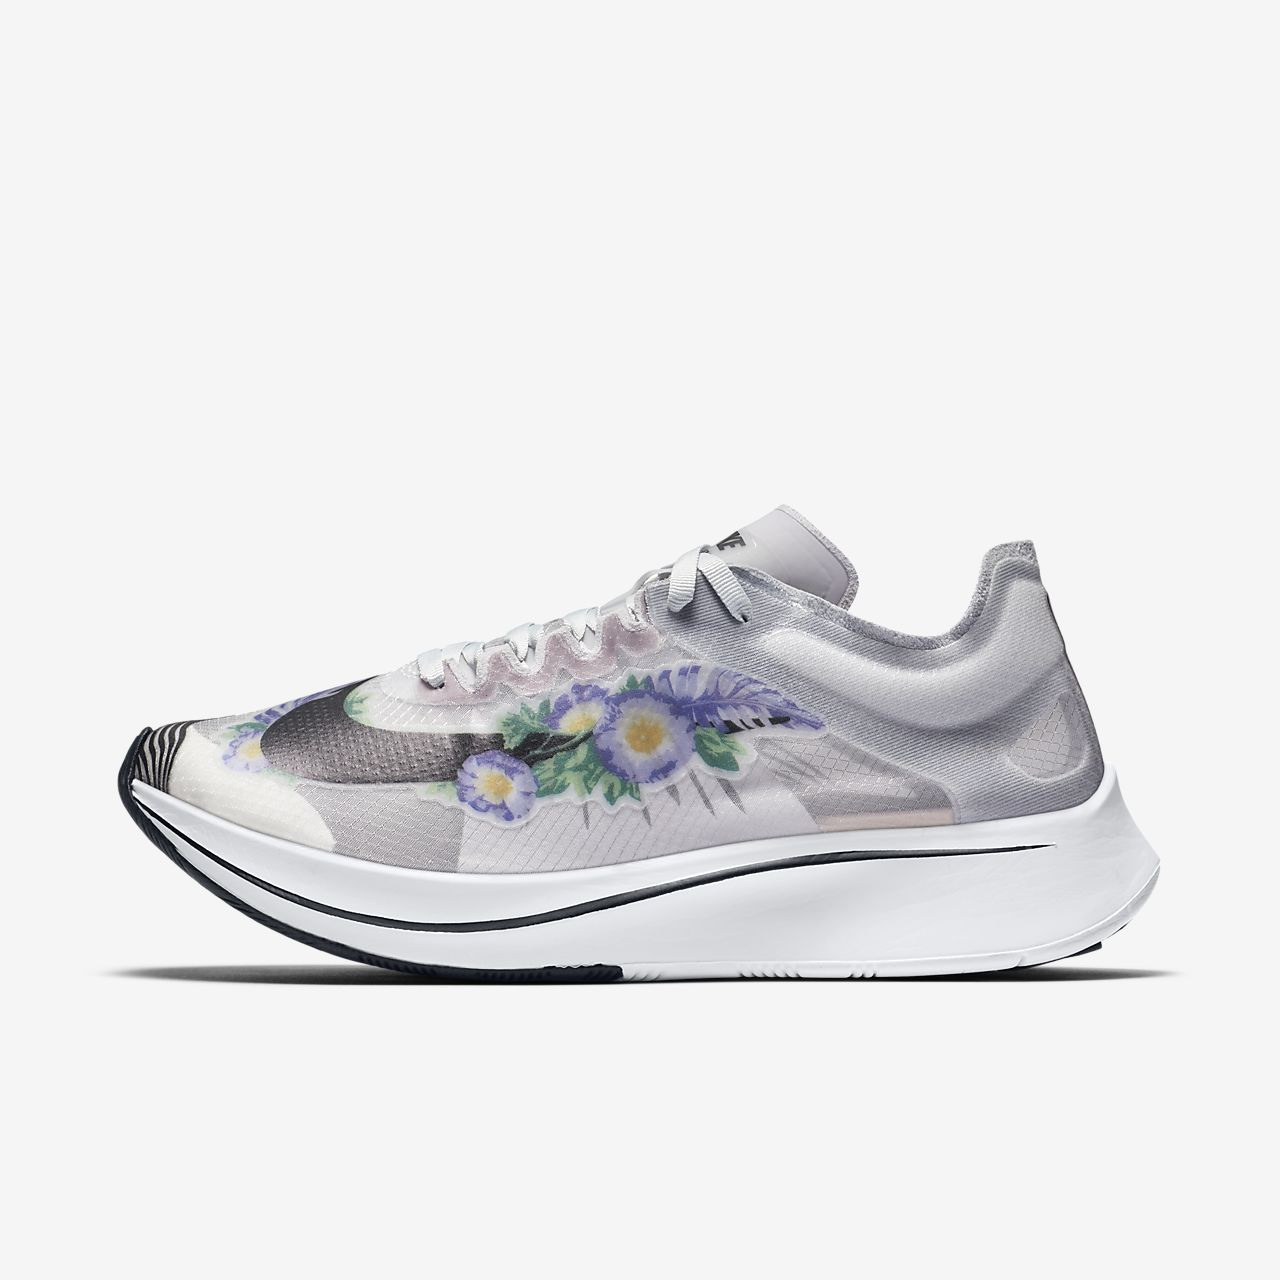 Nike Zoom Fly SP Women's Graphic Running Shoe